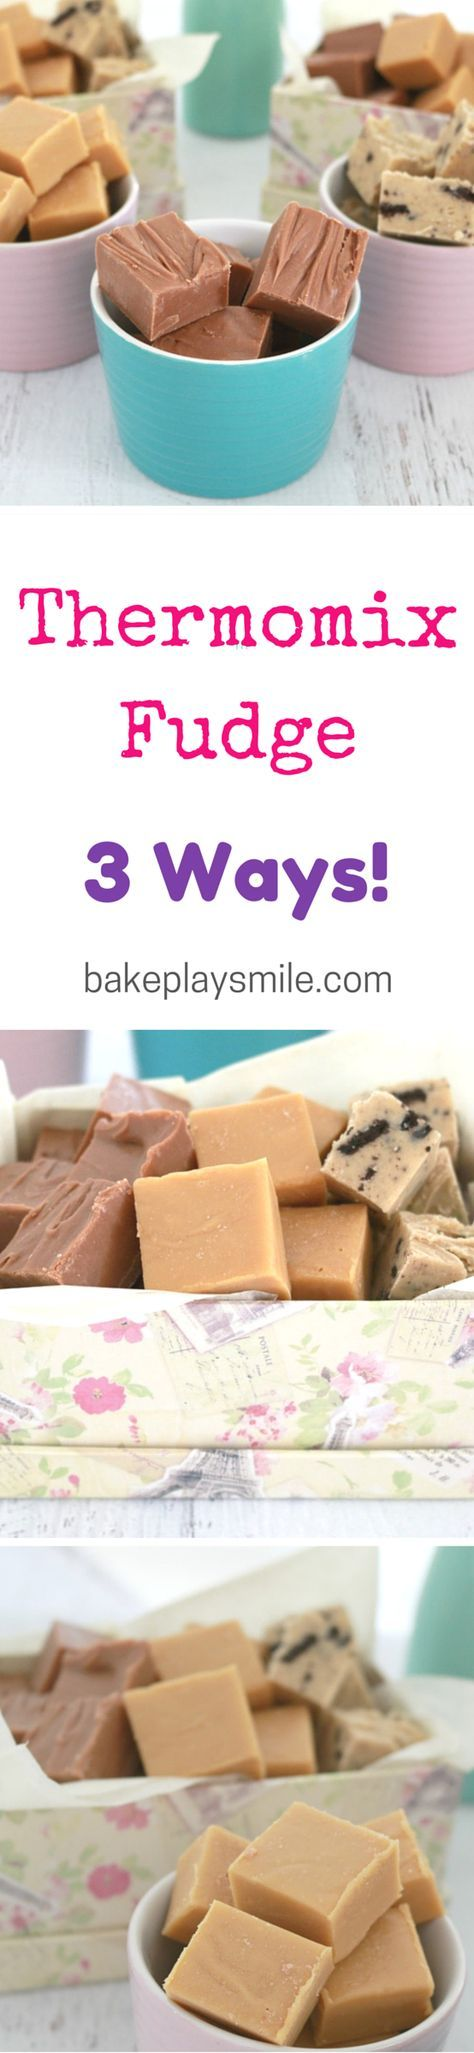 Salted Caramel, Chocolate and Cookies & Cream... making fudge in the Thermomix has never been so easy!